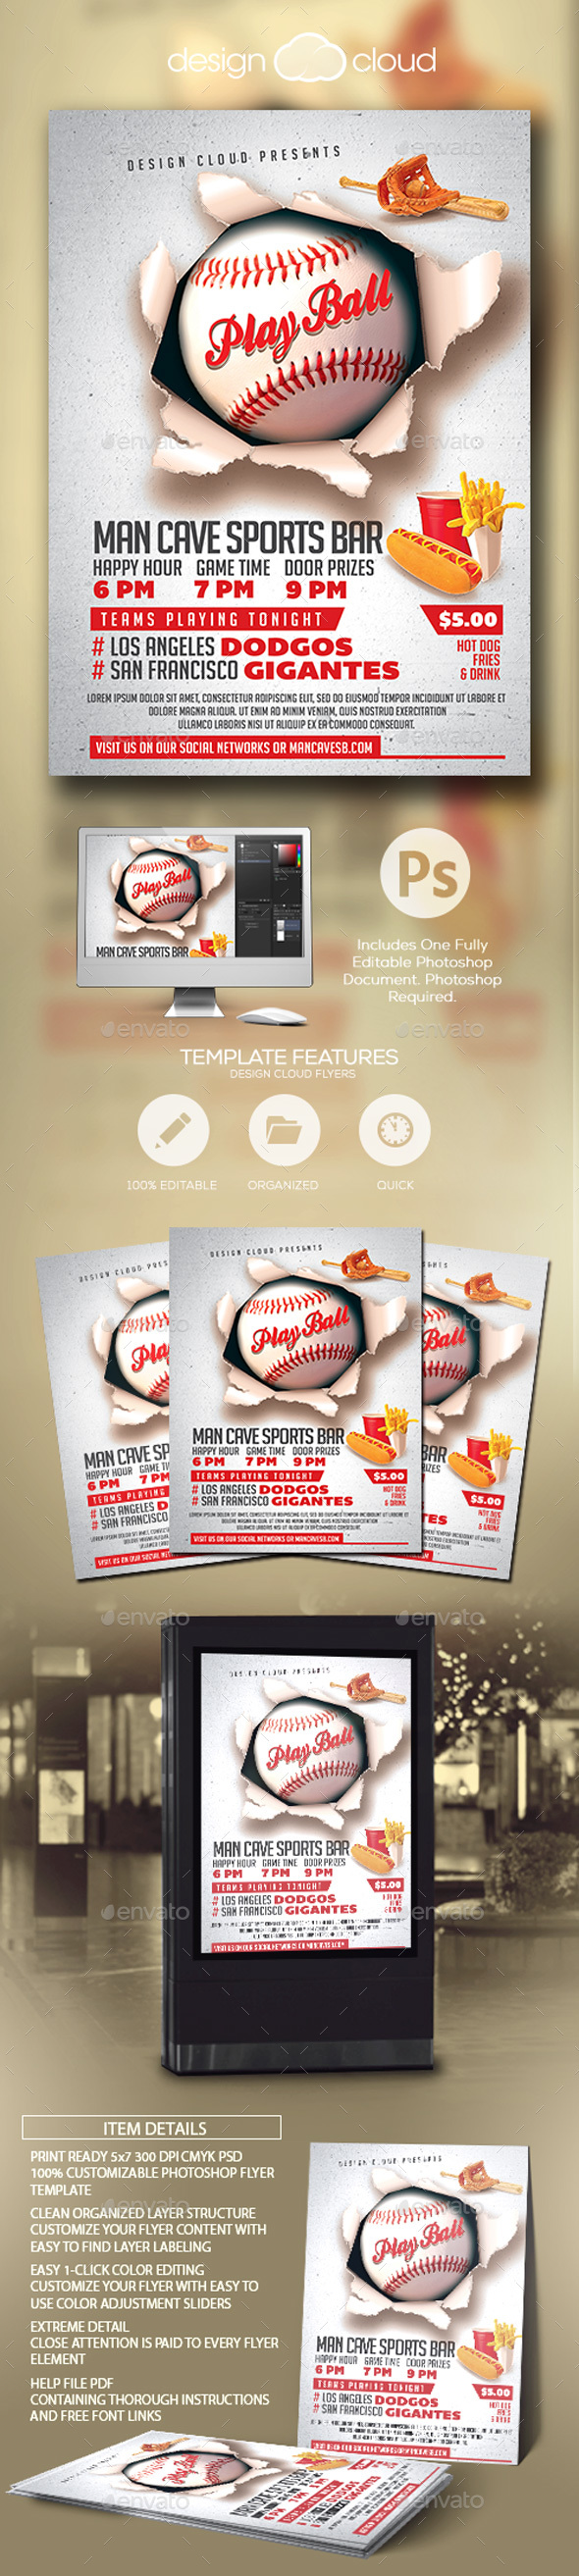 Play Ball Baseball Event Flyer Template - Sports Events